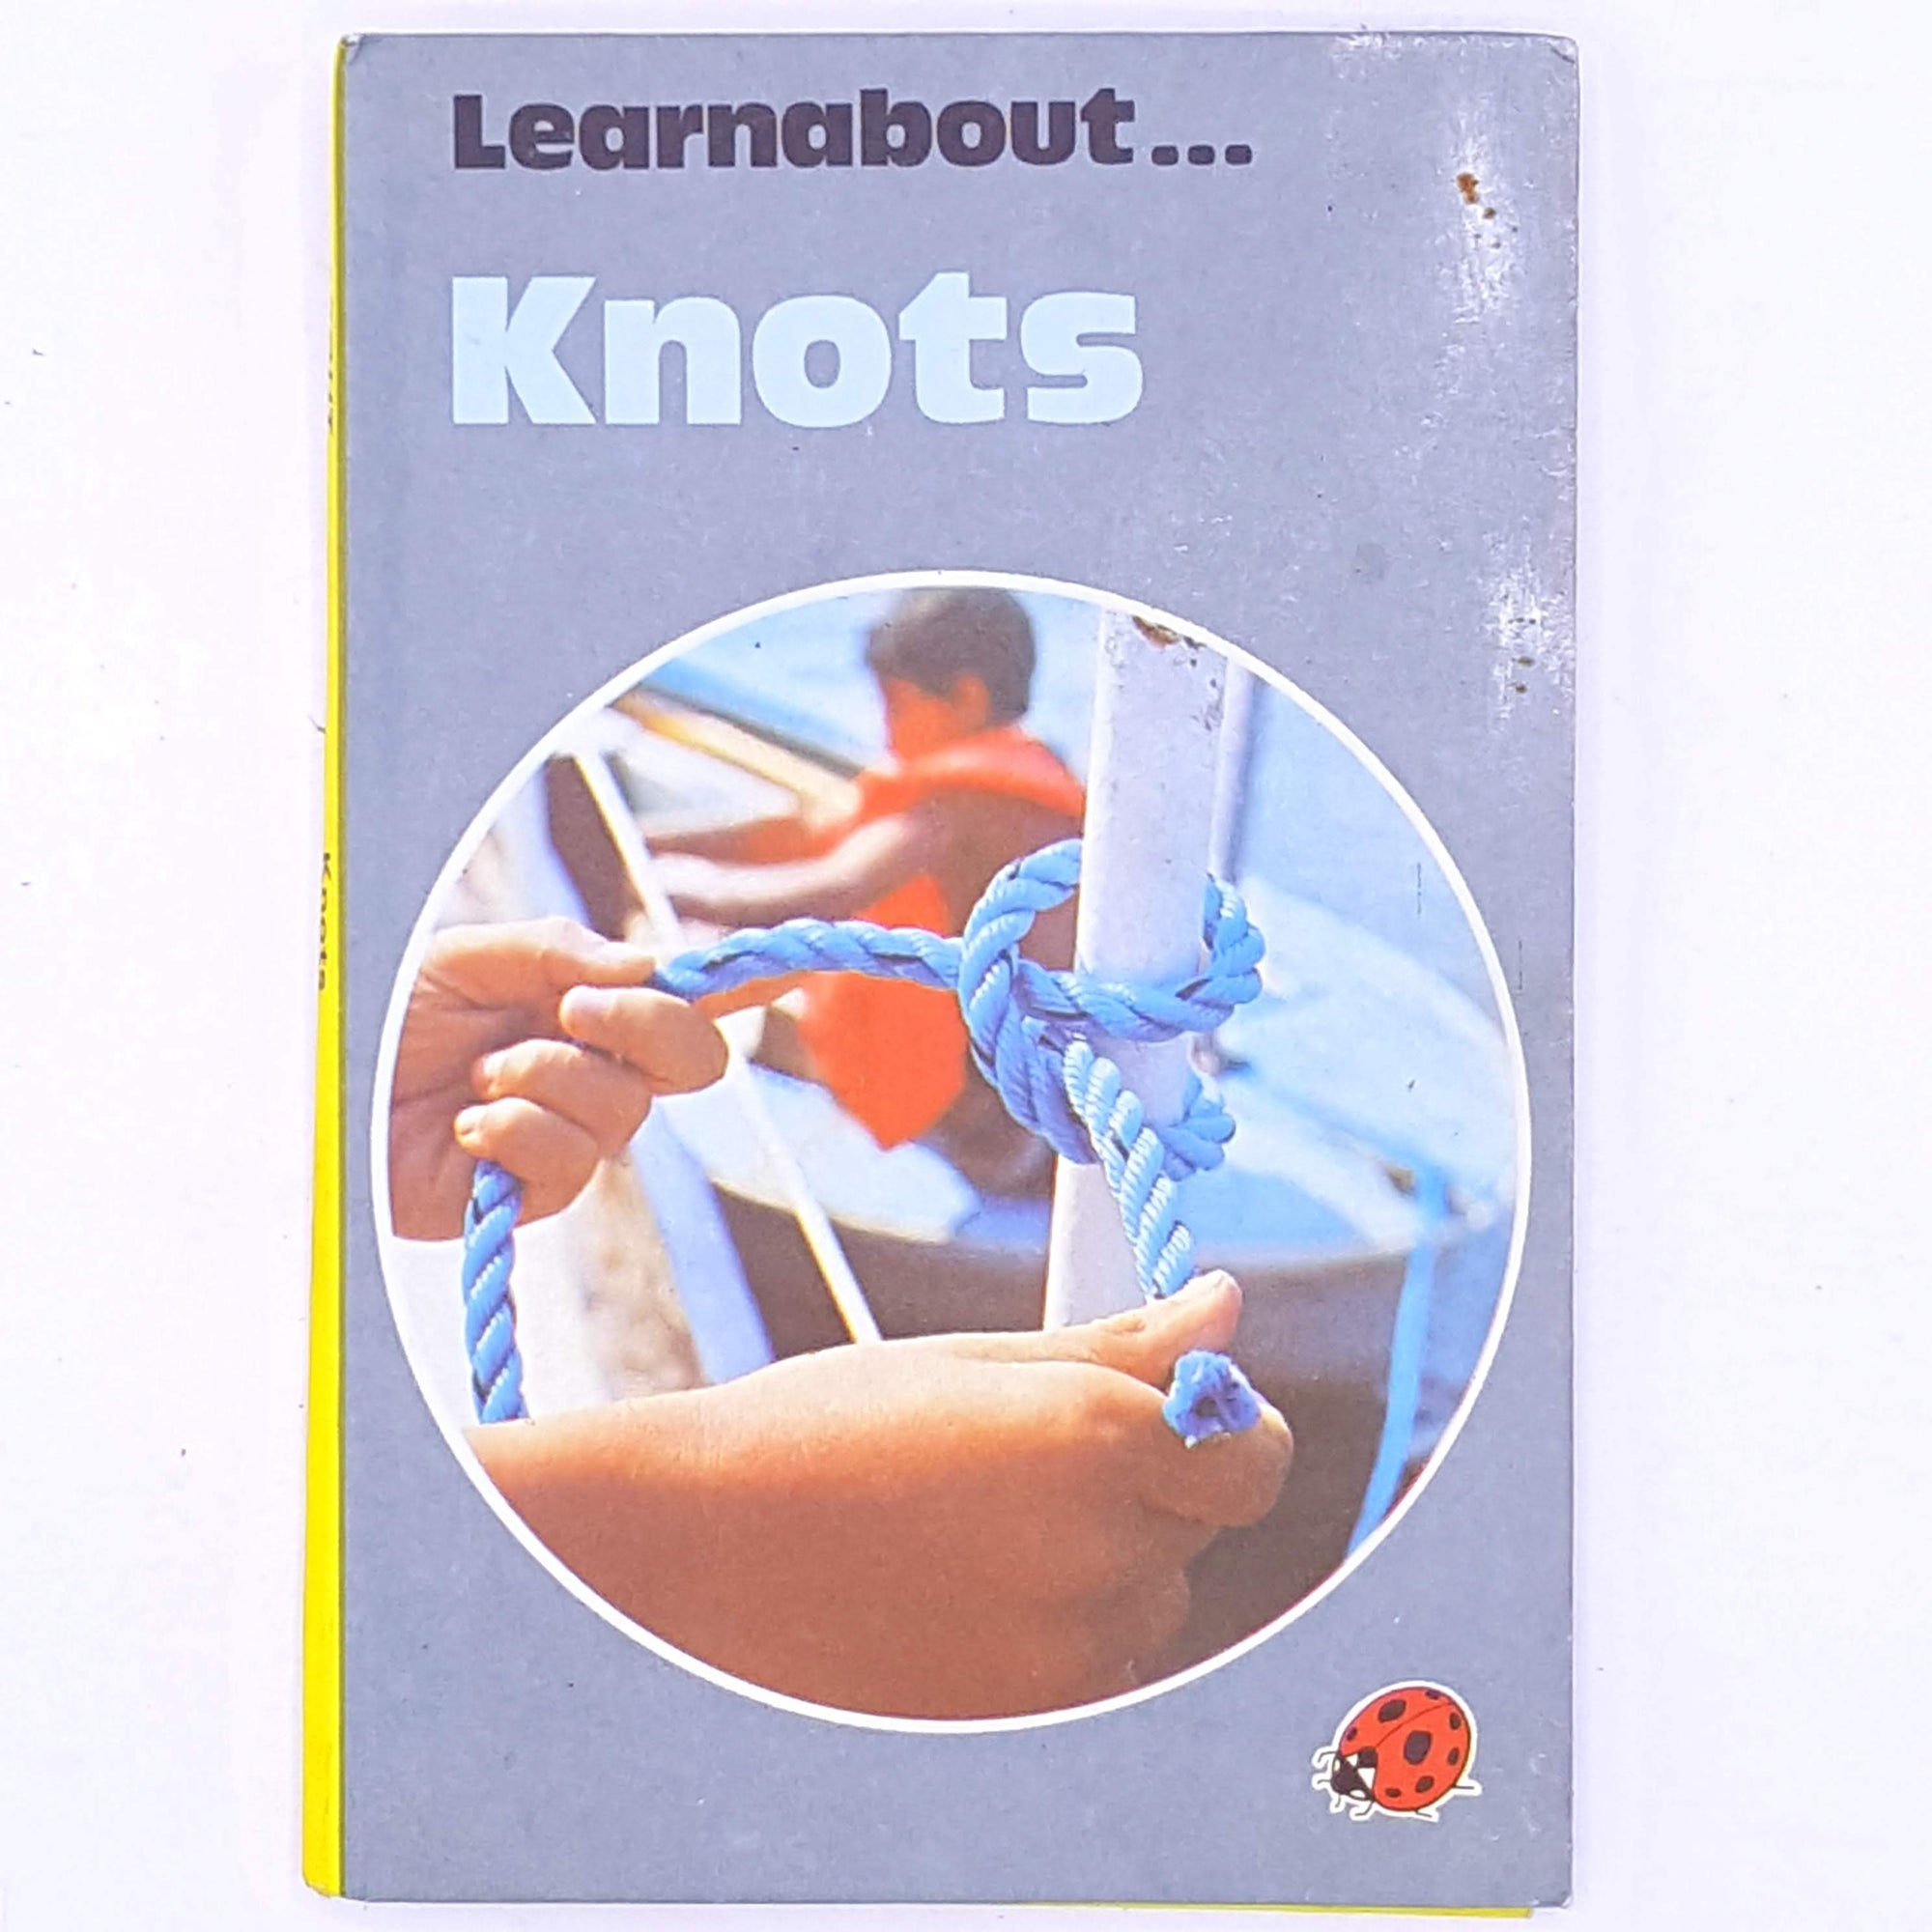 Learnabout... Knots - Ladybird